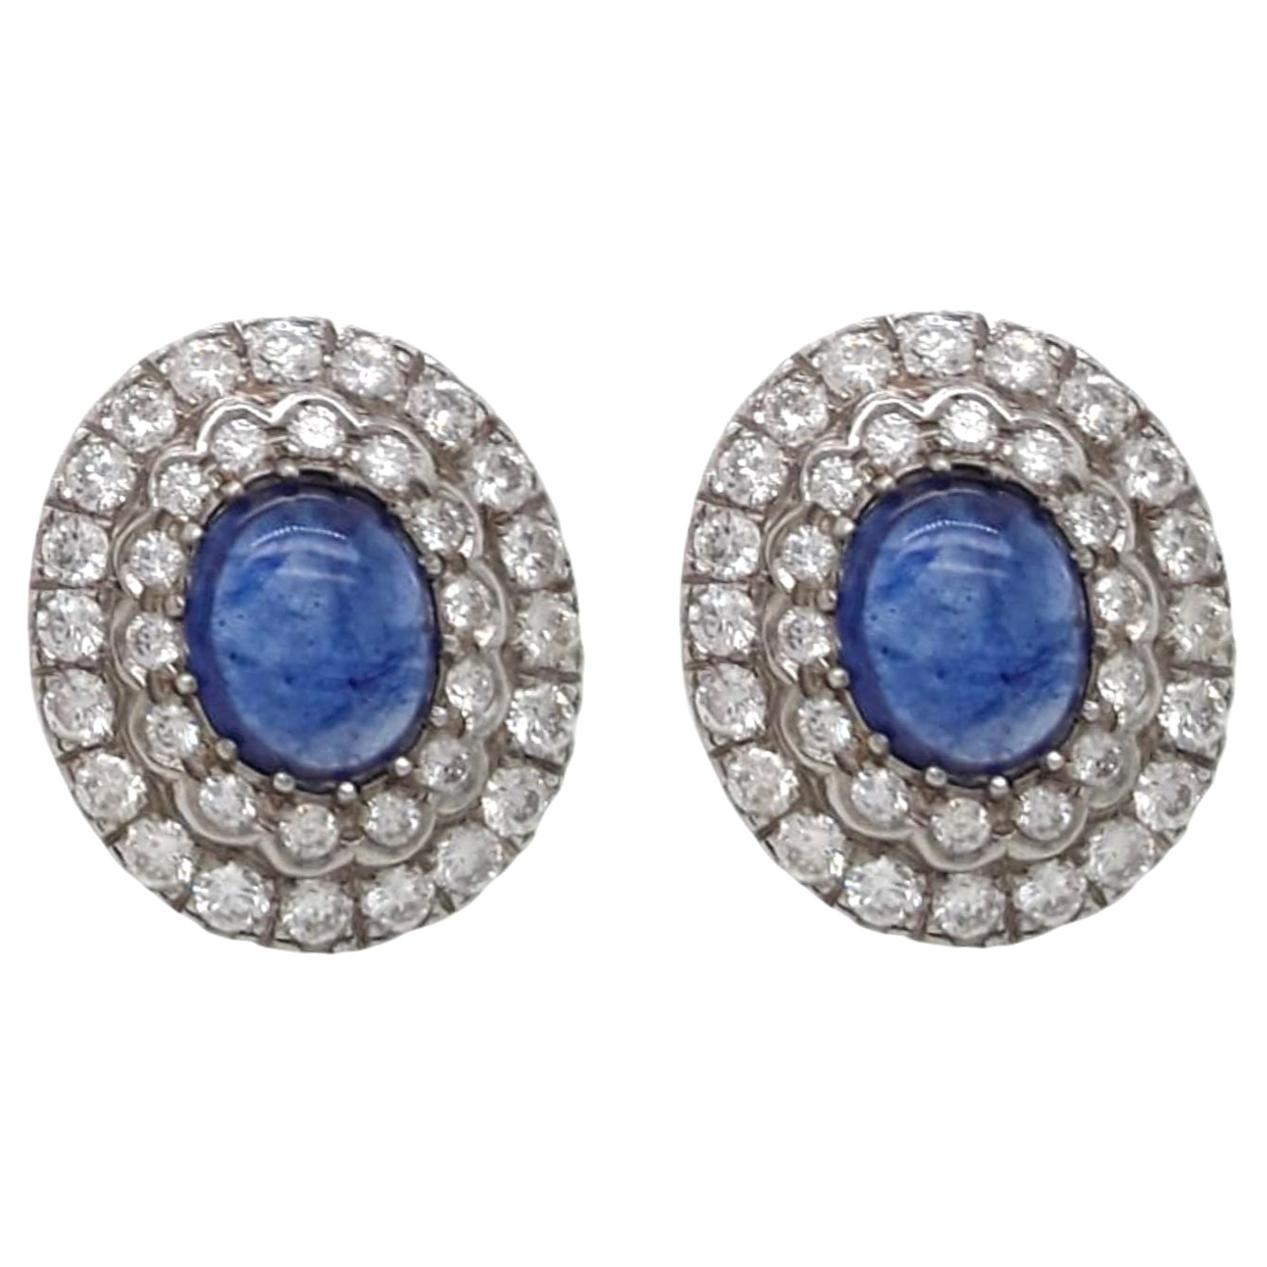 Diamond and Sapphire Antique Style Earrings